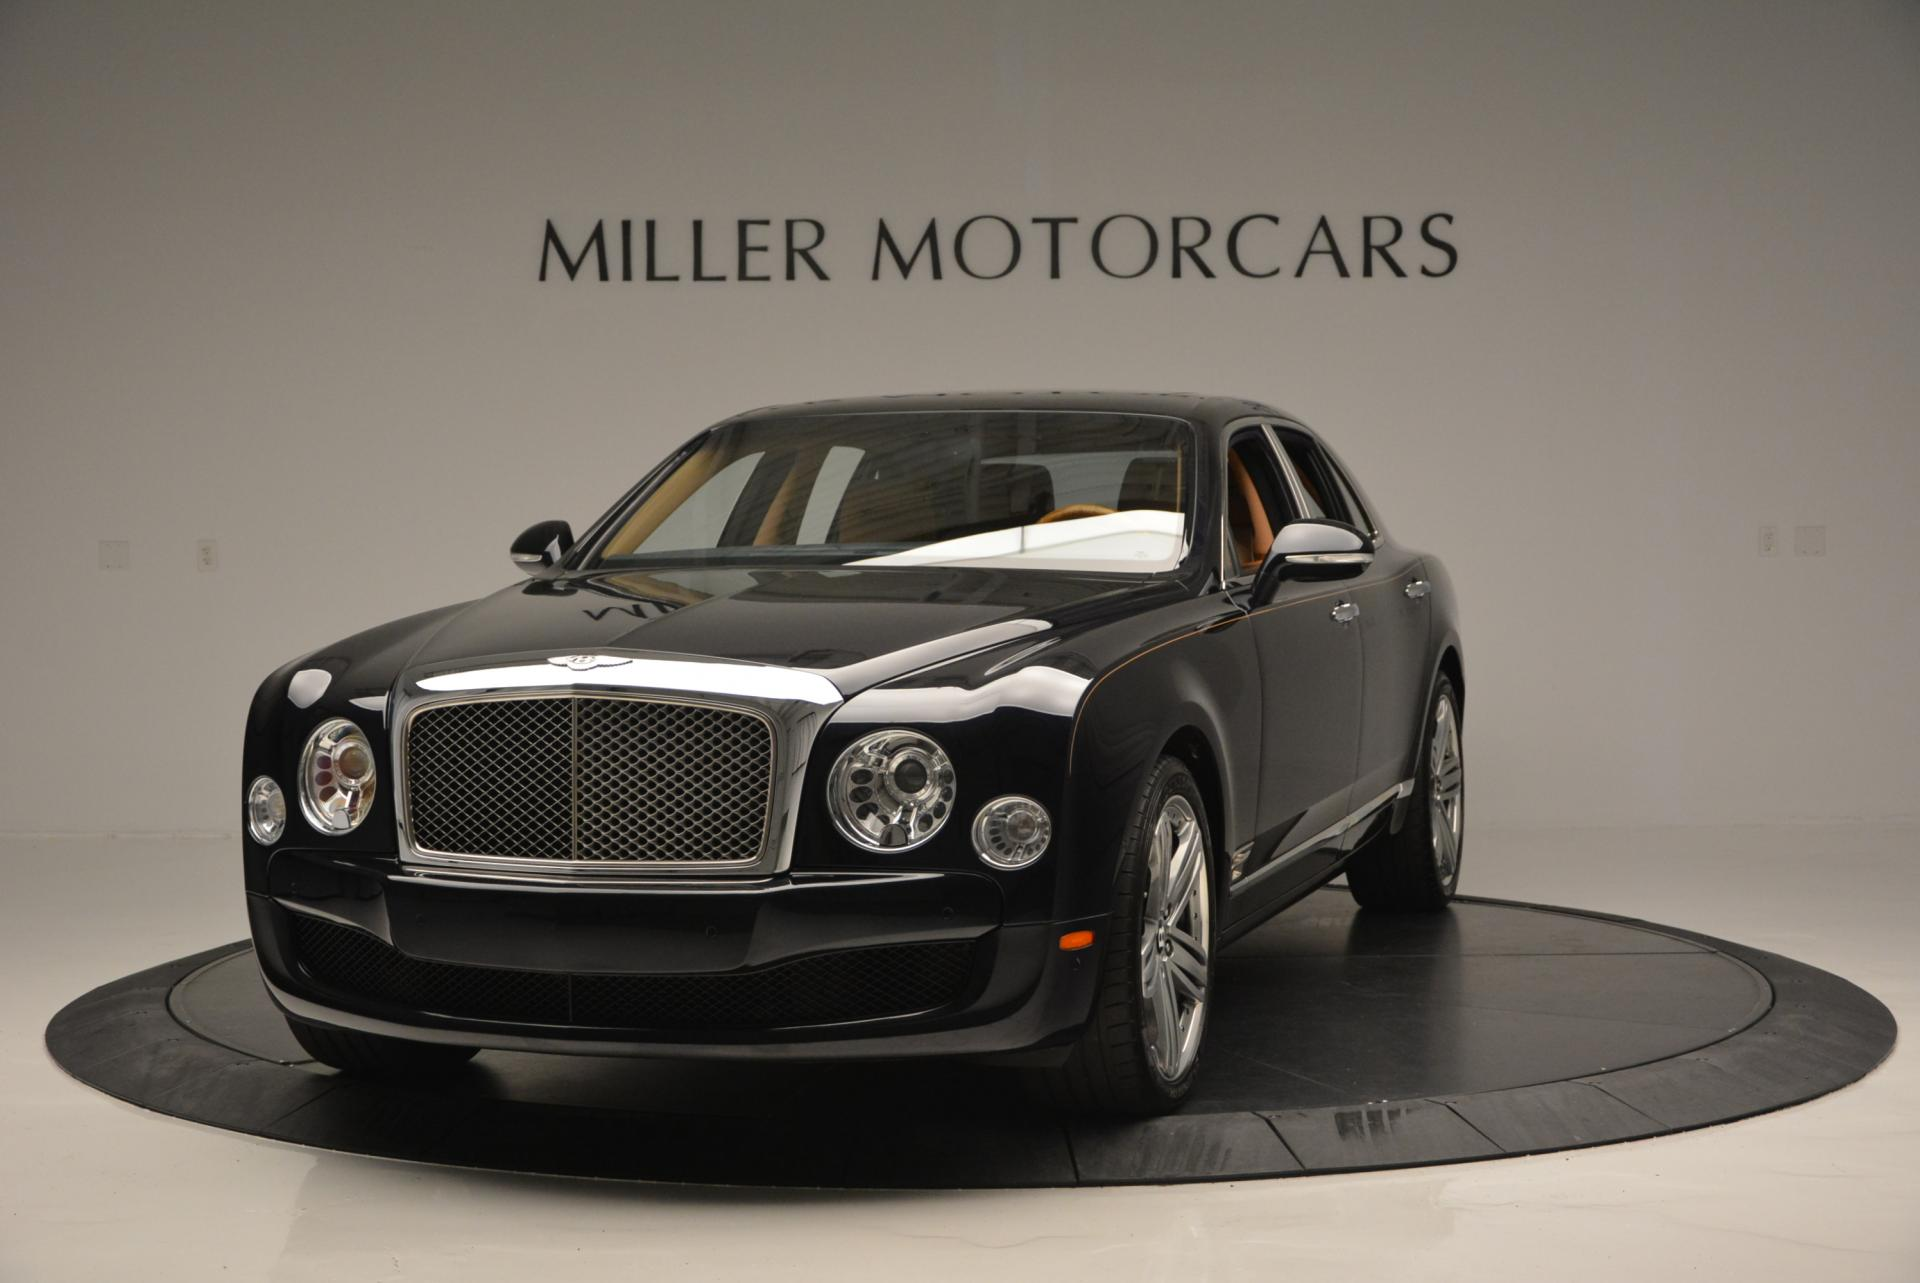 Used 2013 Bentley Mulsanne Le Mans Edition- Number 1 of 48 for sale Sold at Pagani of Greenwich in Greenwich CT 06830 1